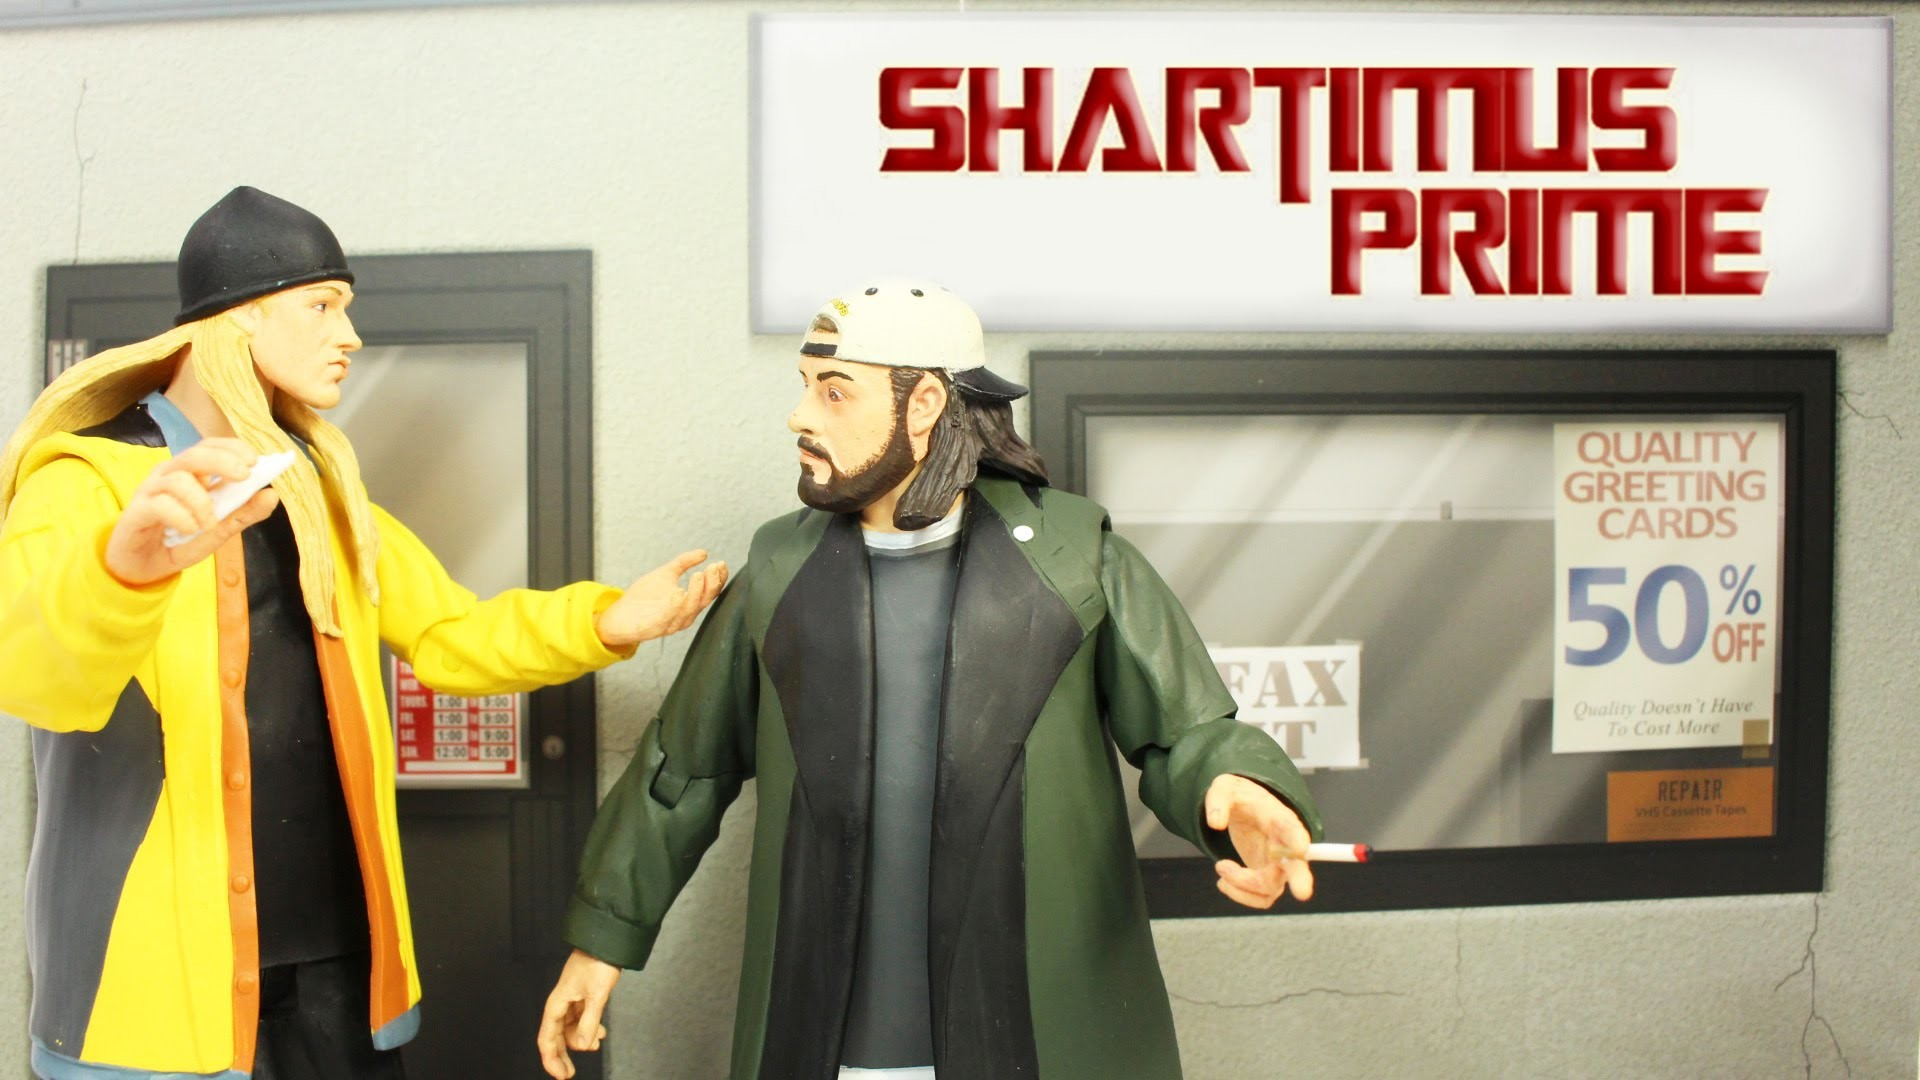 1920x1080 Jay And Silent Bob Strike Back Wallpaper 17 - 1920 X 1080